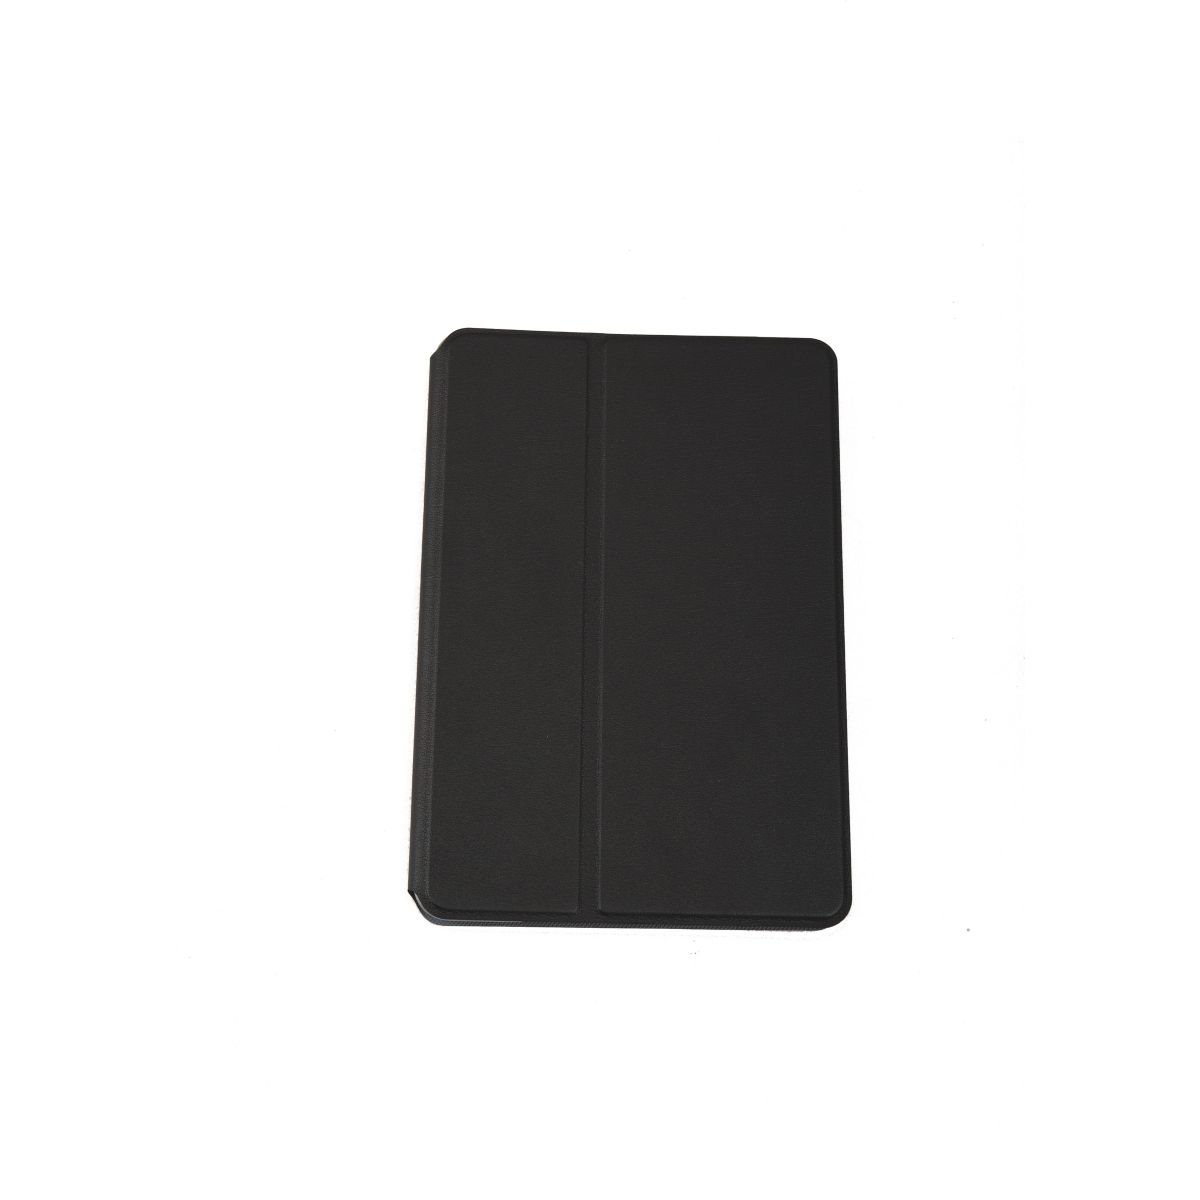 Etui ESSENTIELB iPad Mini 4 stand noir (photo)